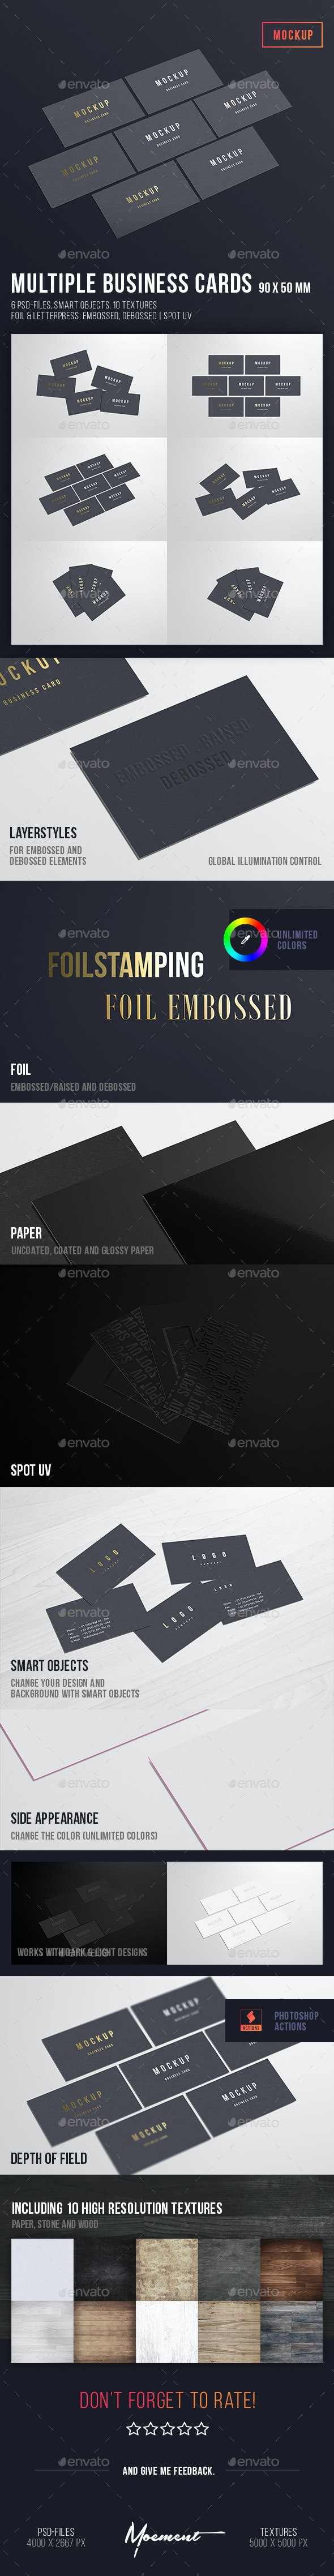 Multiple Business Cards Mockup 90x50 - Business Cards Print